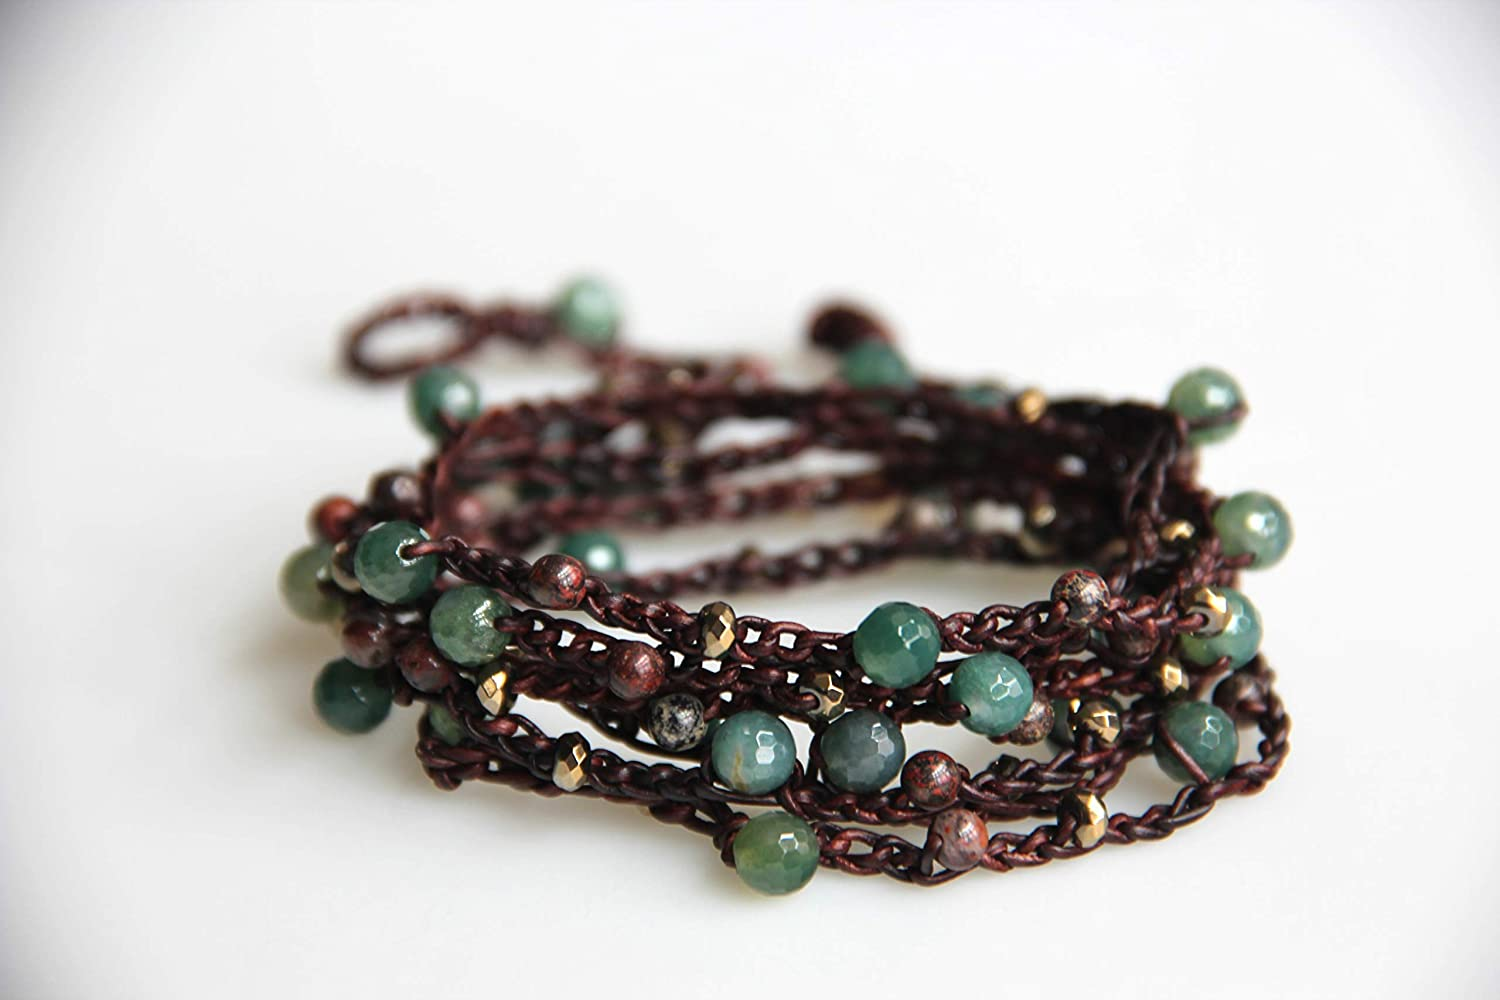 Inventory cleanup selling sale free Moss Agate Leather Bracelet Wrap